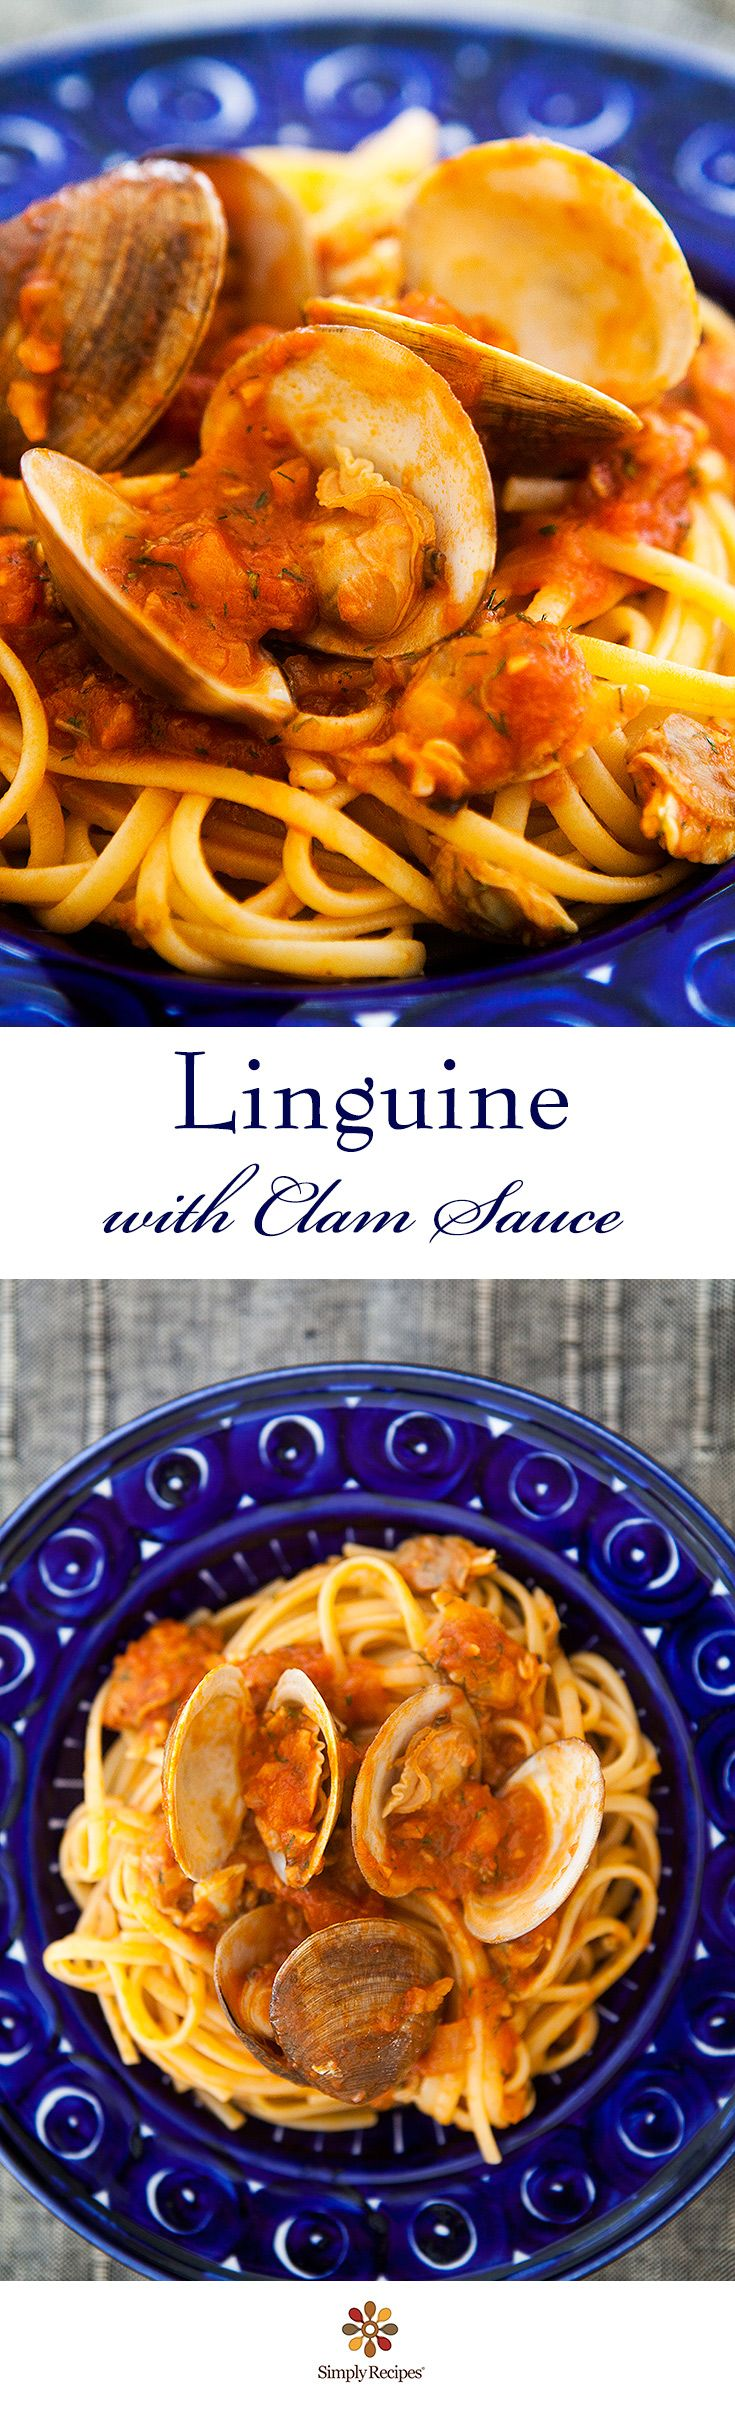 Linguine with Clam Sauce ~ Classic Italian-American linguine with clam sauce with fresh and canned clams, tomatoes and fennel ~ SimplyRecipes.com